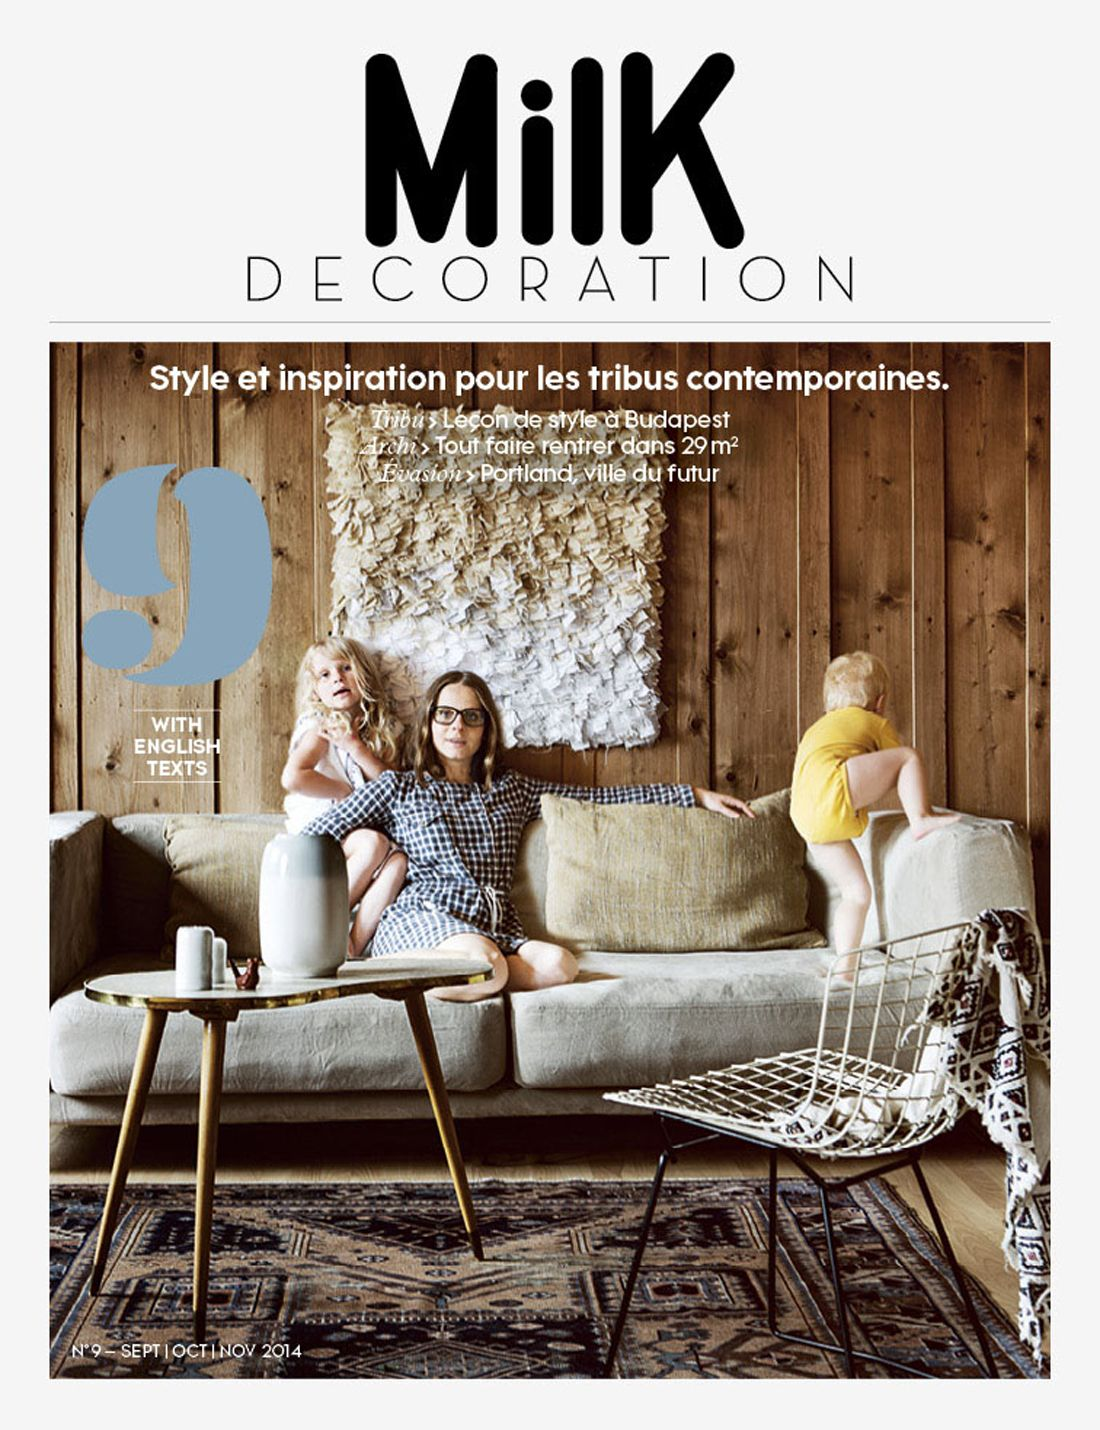 Milk decoration 9 est en kiosque ◇◇ ◇◇ milk decoration 9 magazine